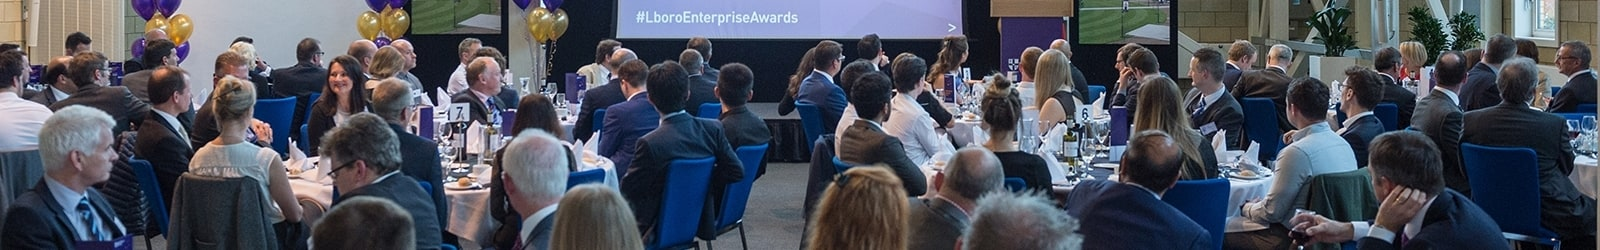 Enterprise Awards Event